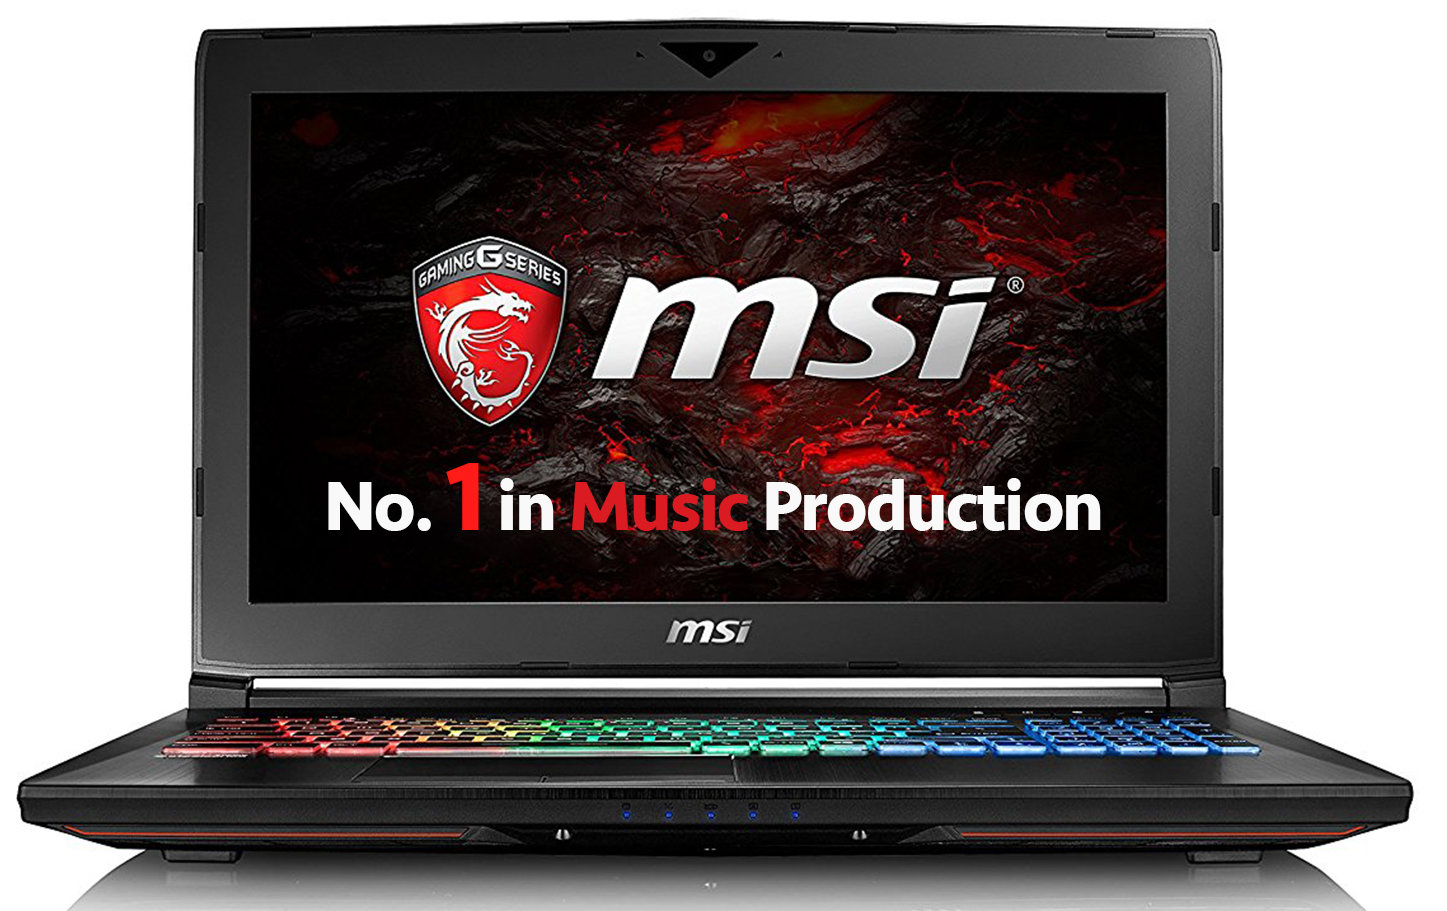 Best Laptops for Music Production - Top 7 Best Music Production Laptops